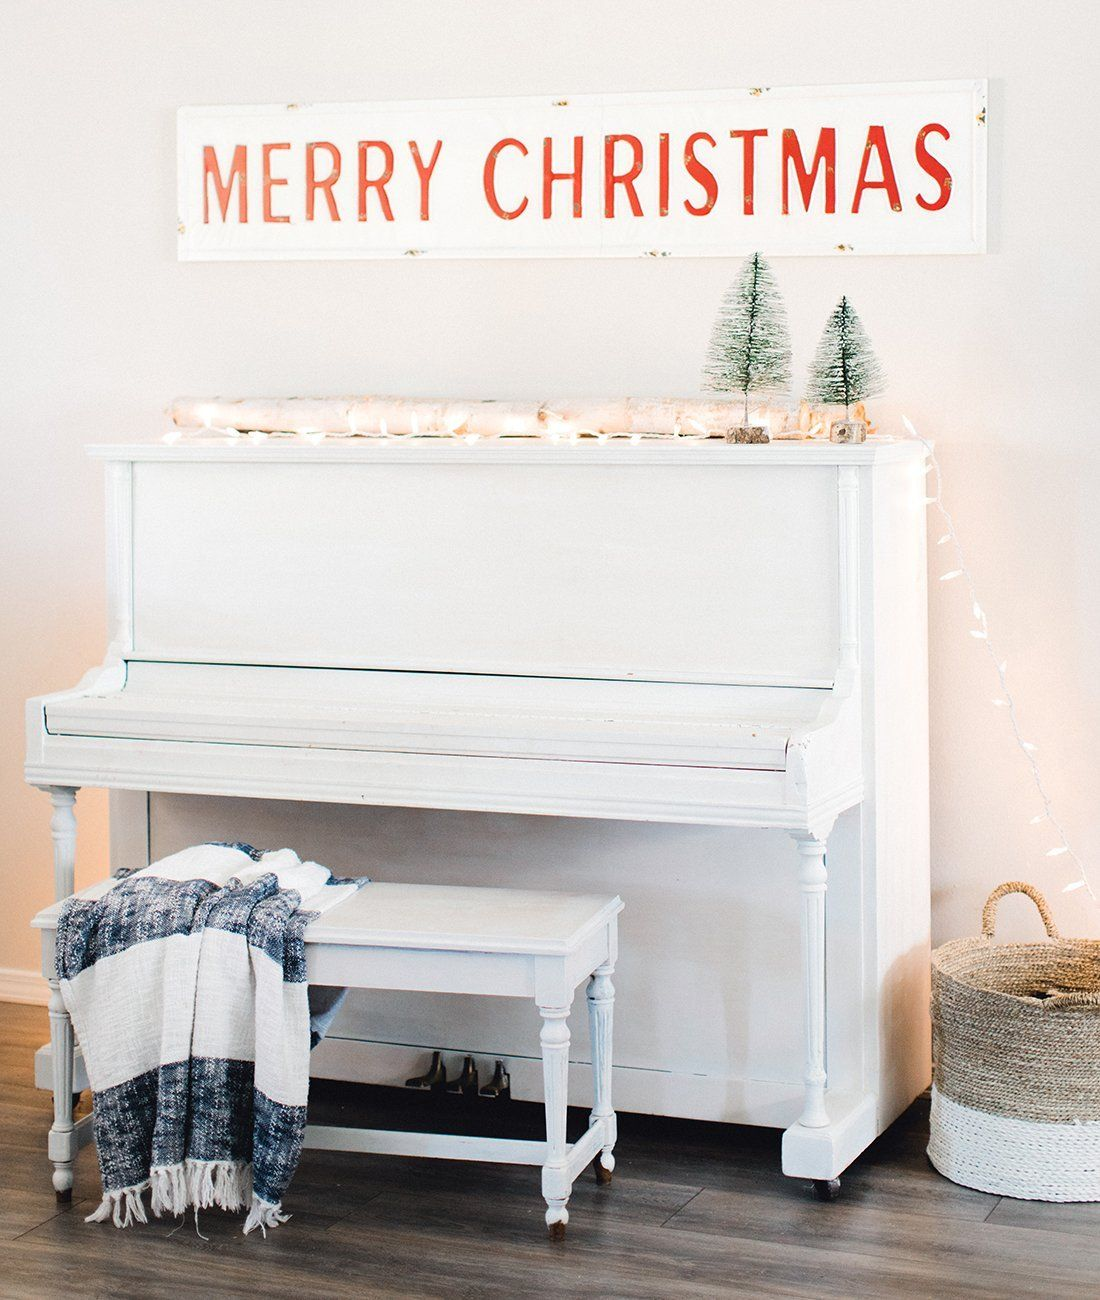 Metal Embossed Merry Christmas Sign Merry christmas sign